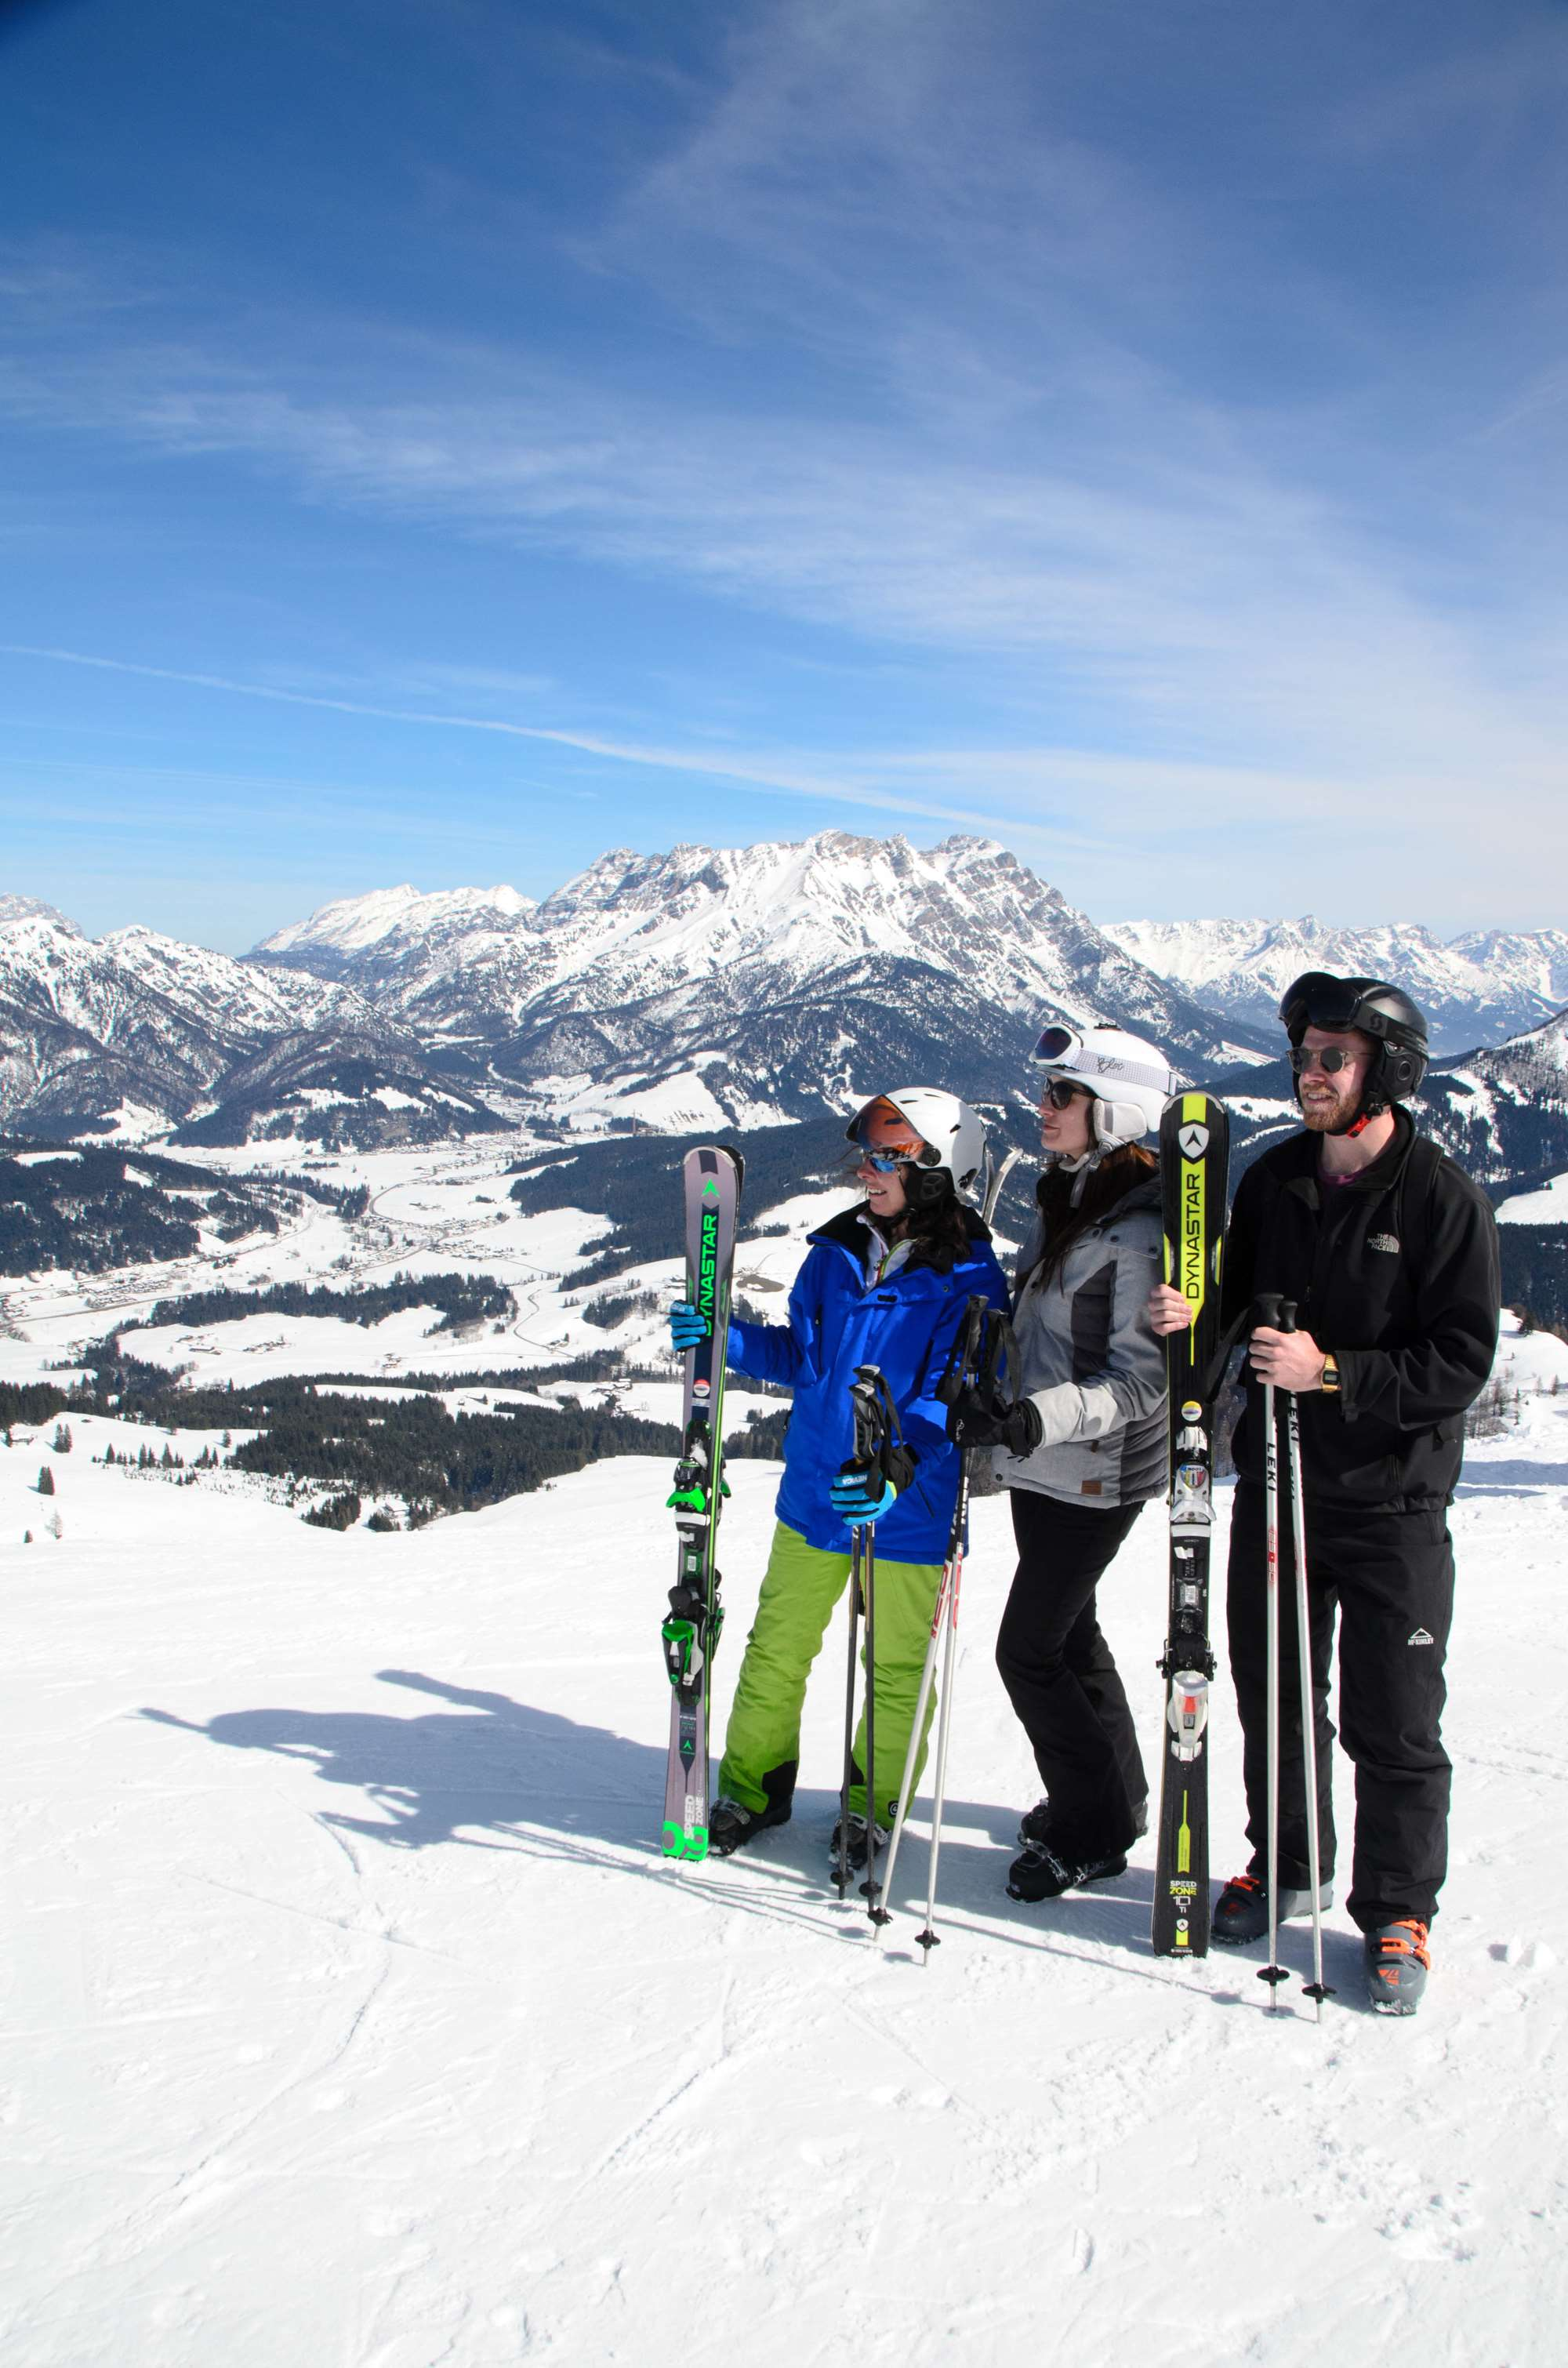 Ski hosting in Saalbach